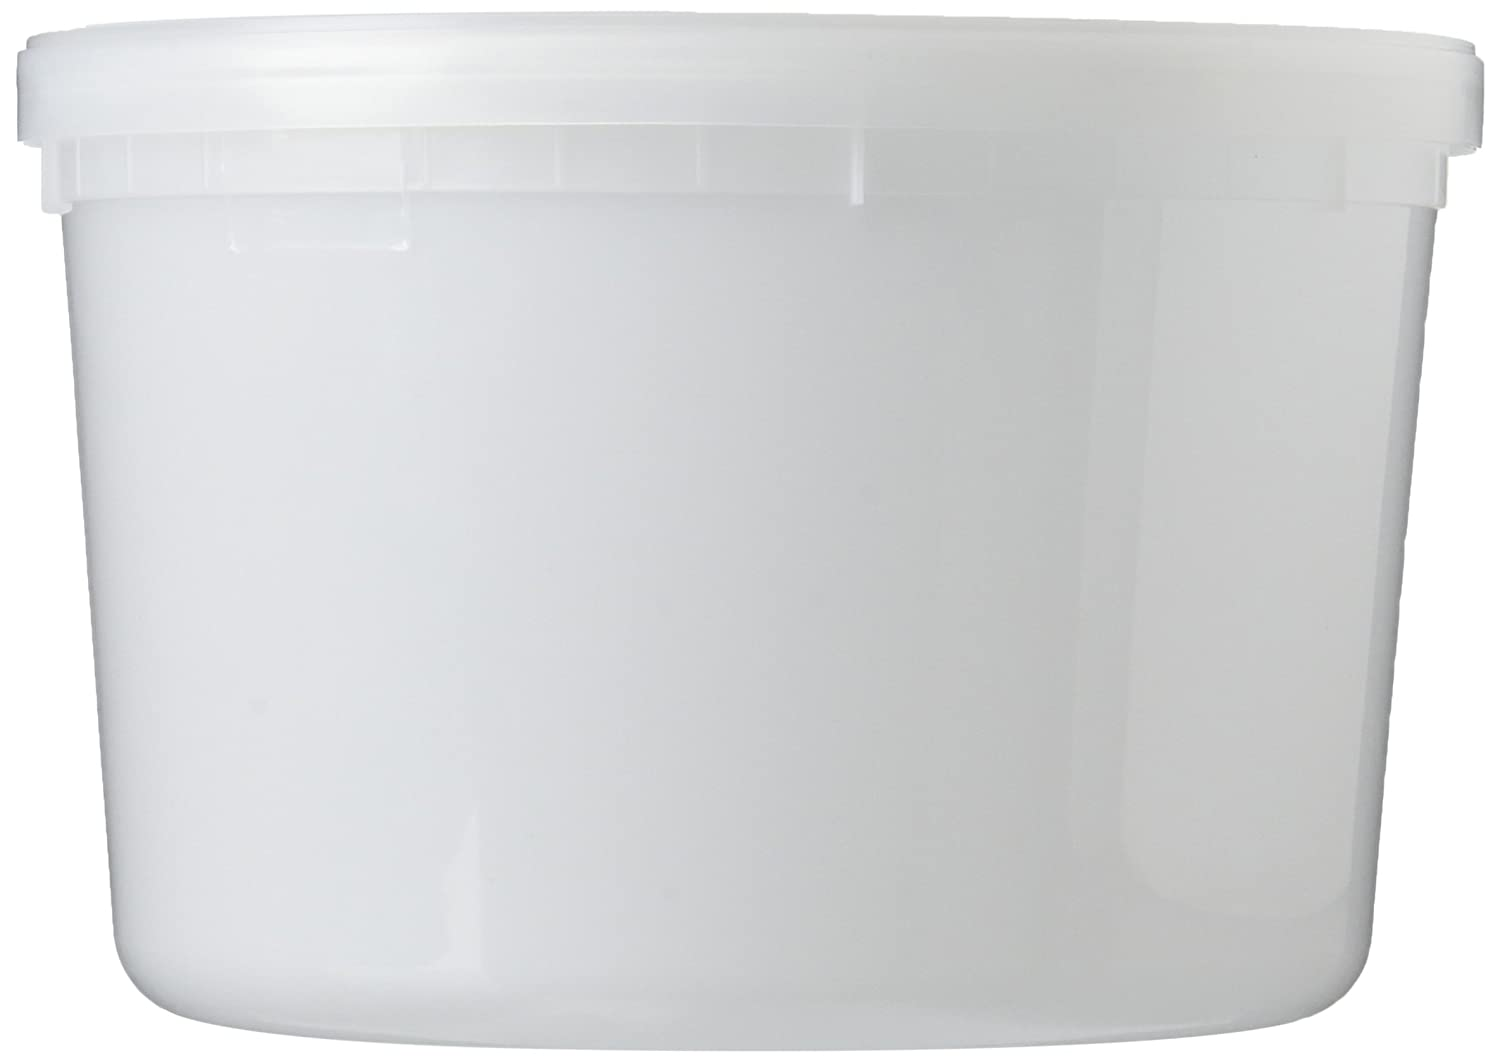 food tub c drums pails yankee containers cans tubs plastic round